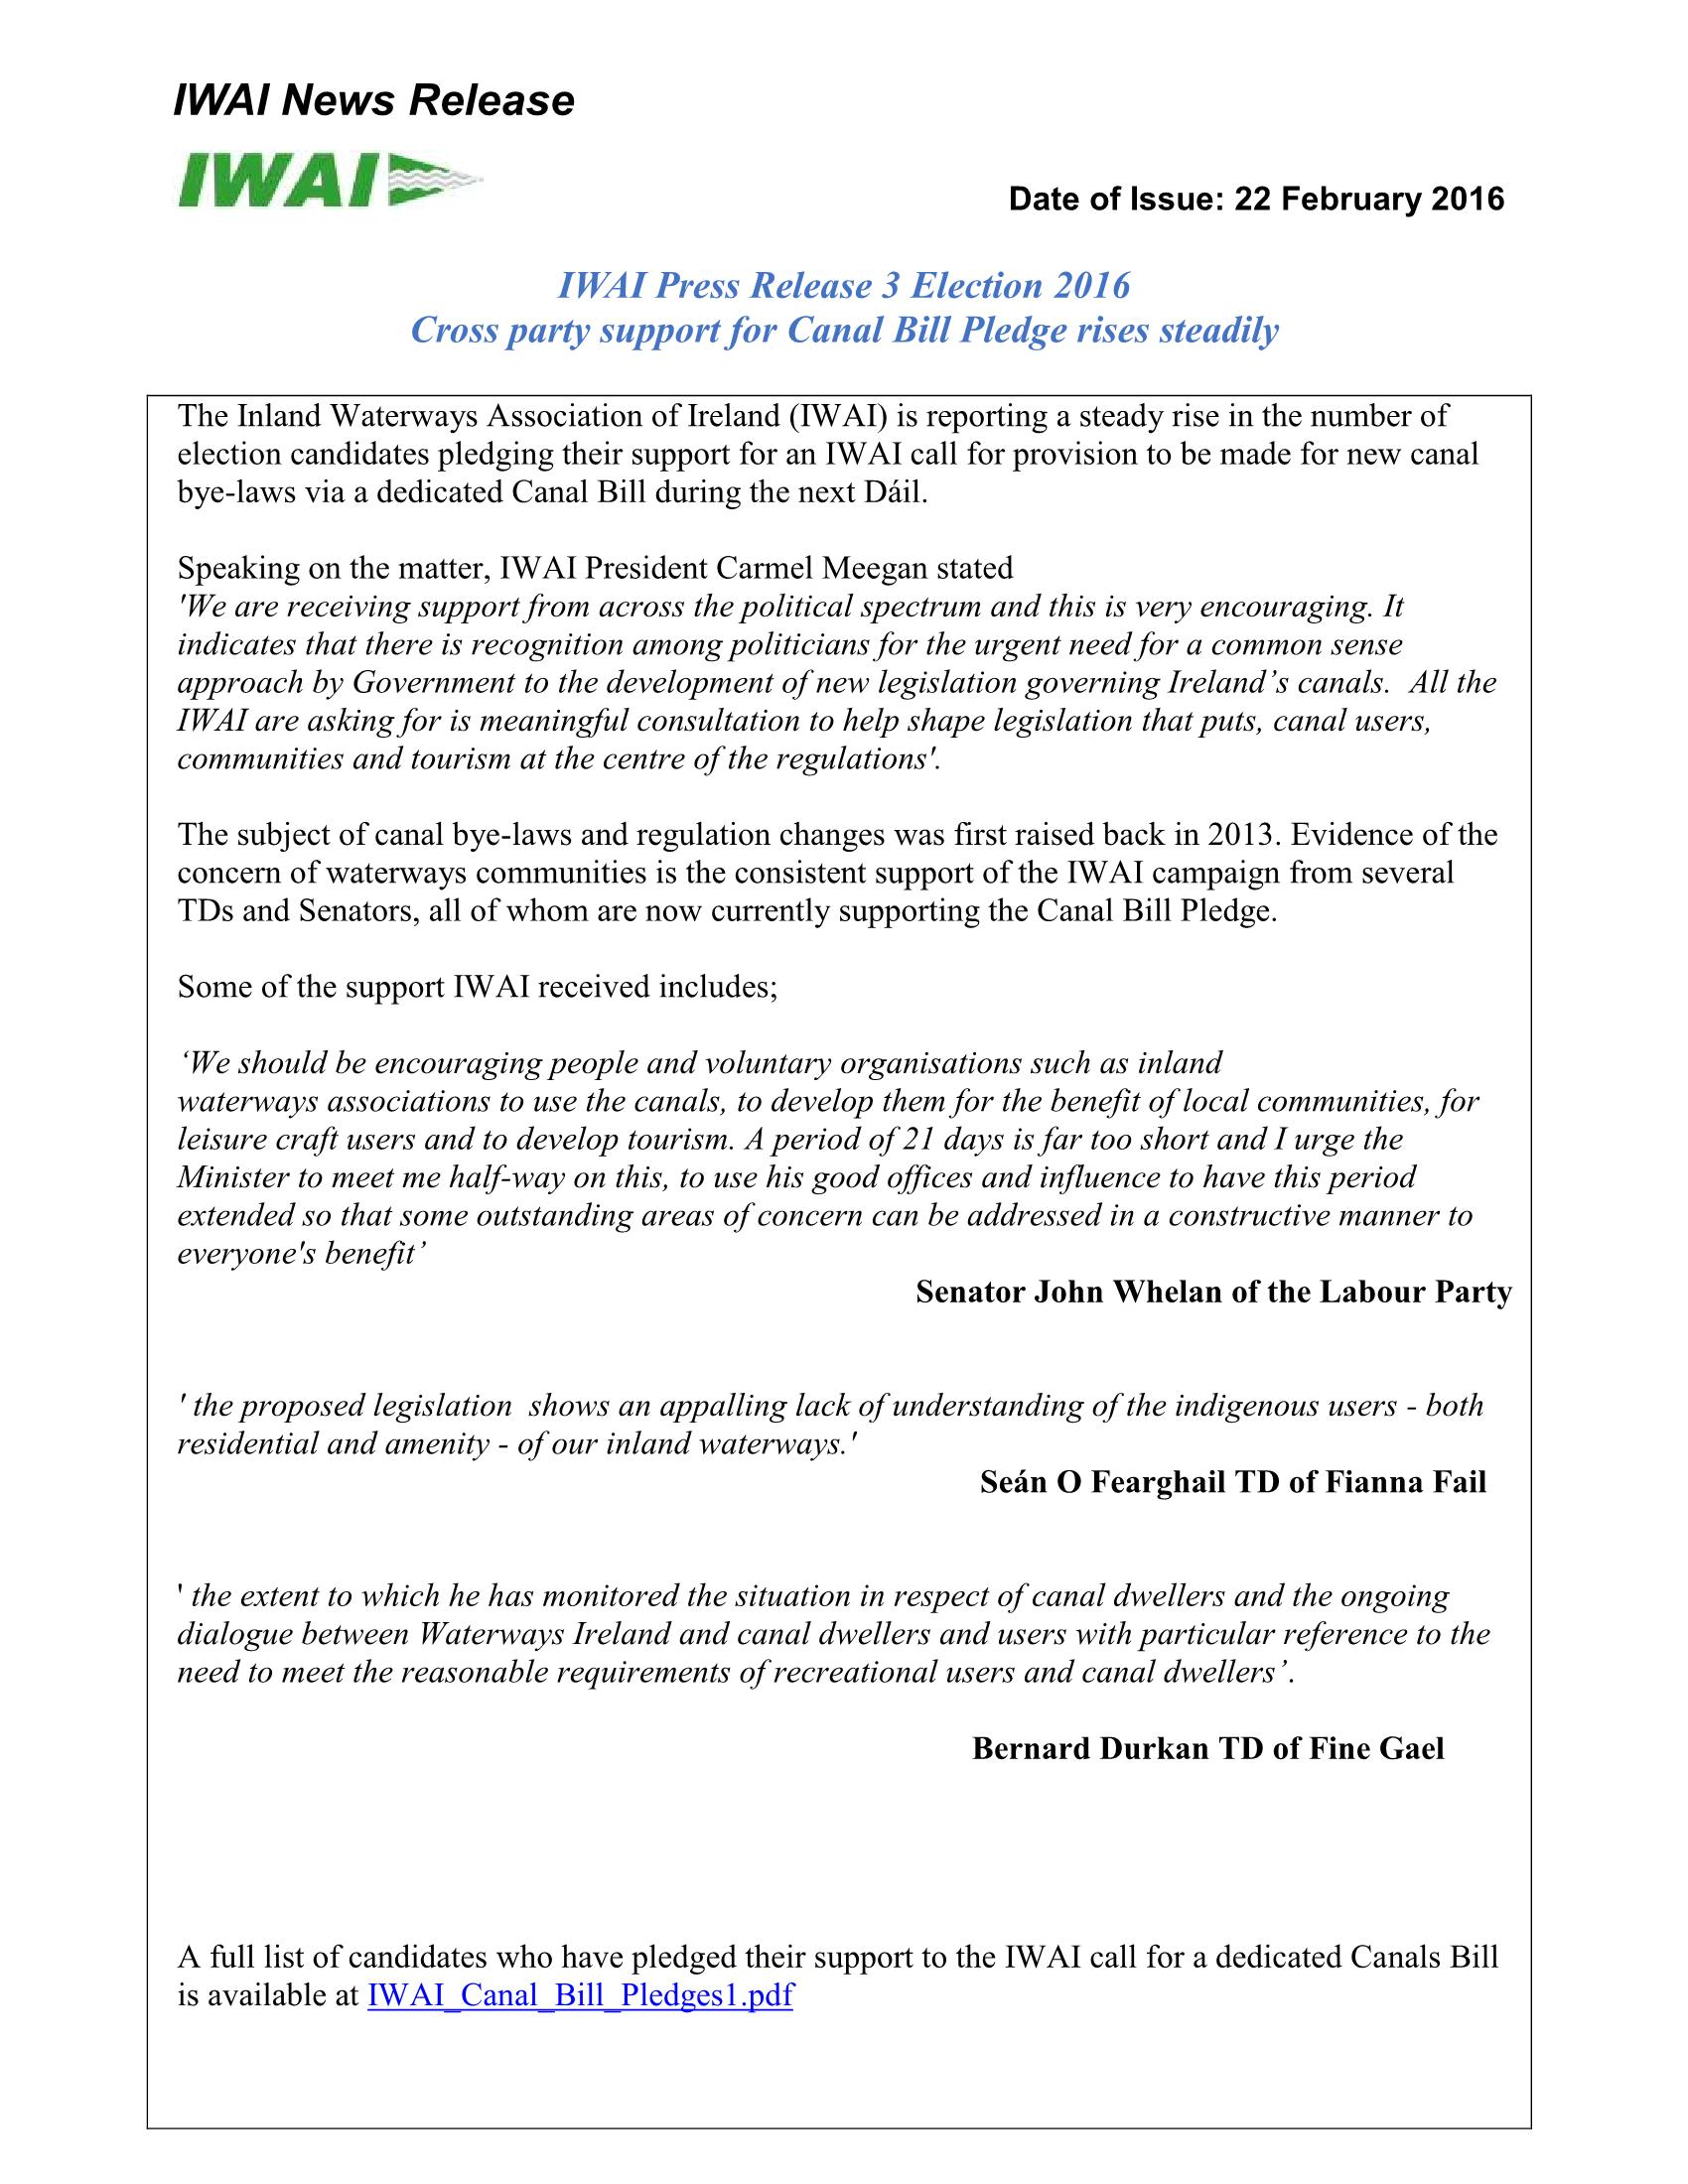 IWAI Press Release 3 Election 2016 Final v2-Flip Book Pages 1-2 ...